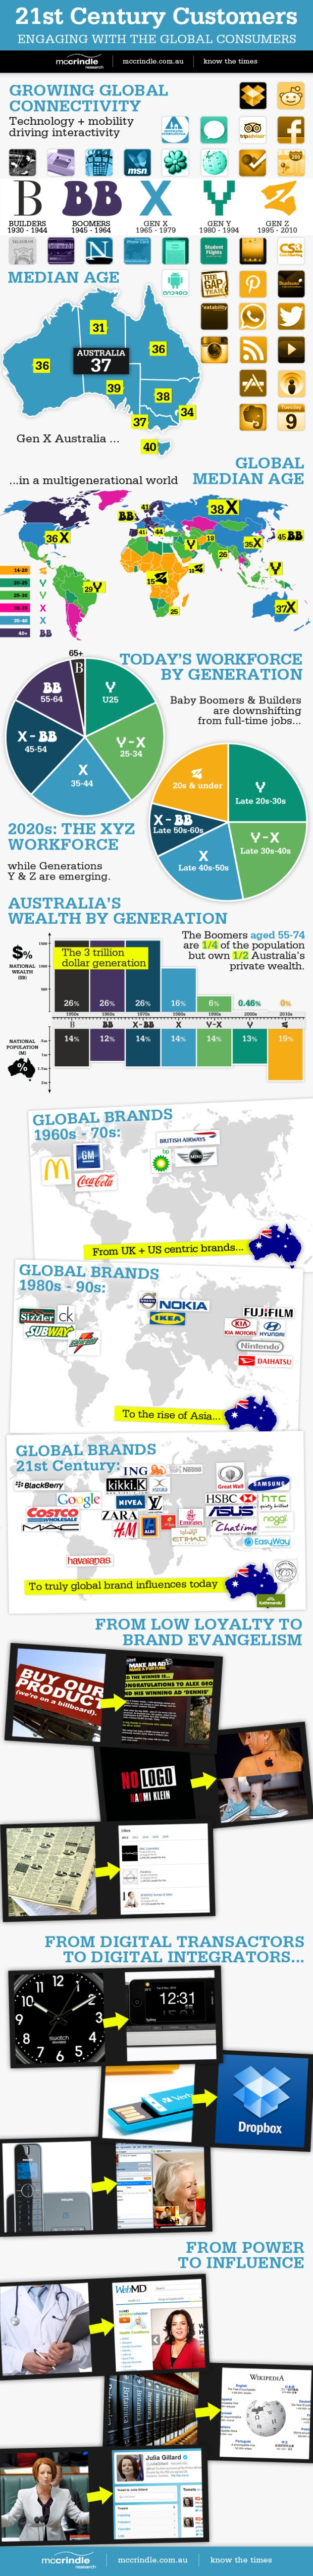 21st-century-customers-engaging-with-the-global-consumers_50610a9d3f97e